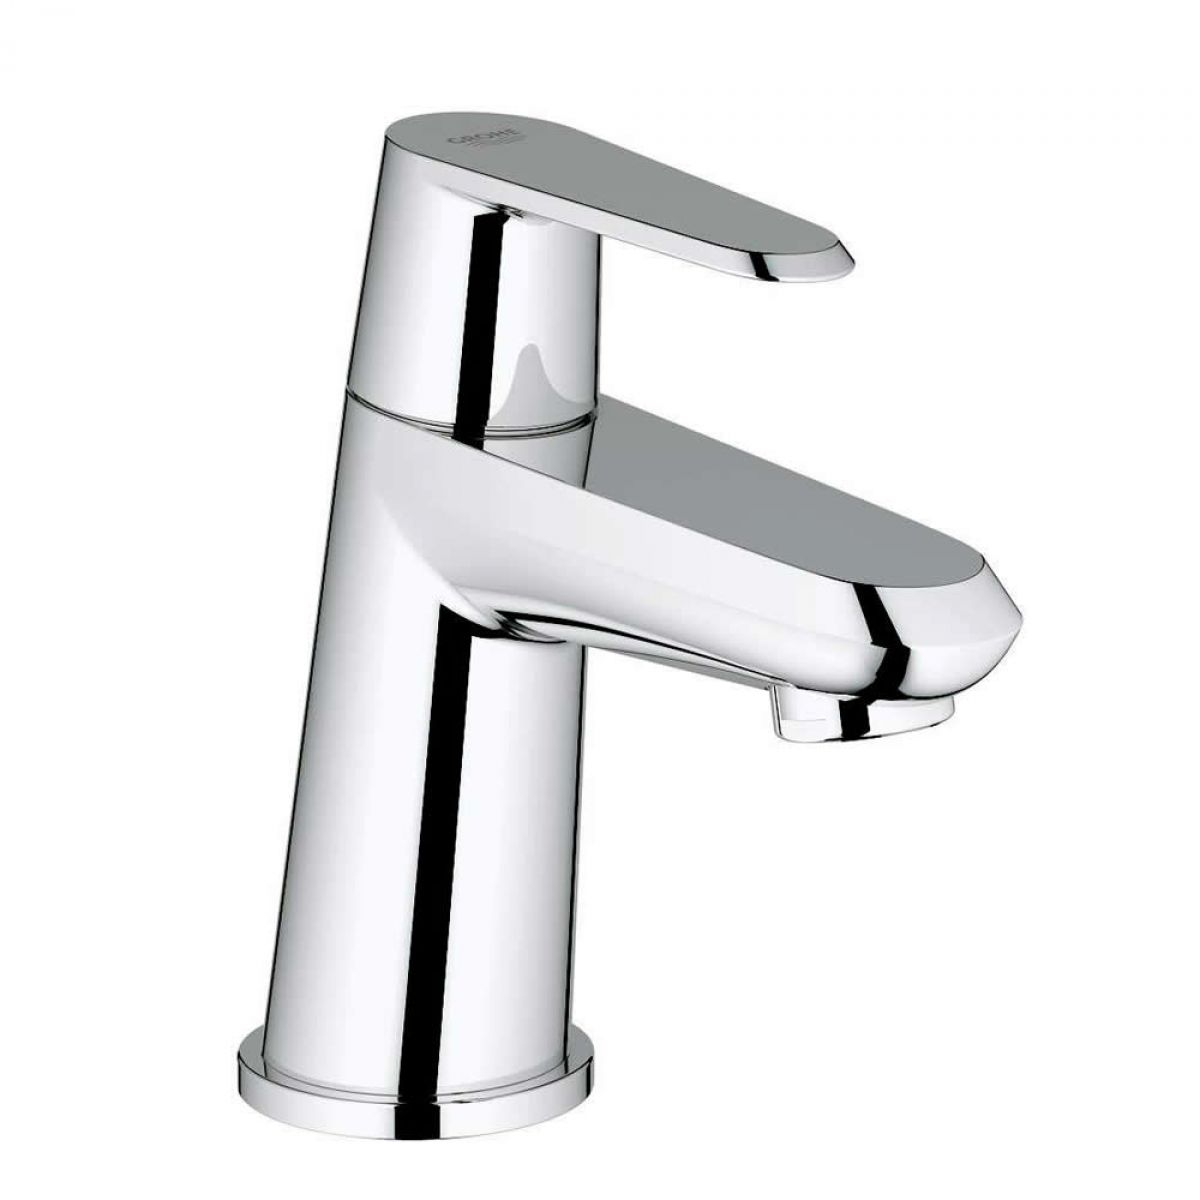 grohe eurodisc cosmopolitan single pillar tap xs size uk bathrooms. Black Bedroom Furniture Sets. Home Design Ideas